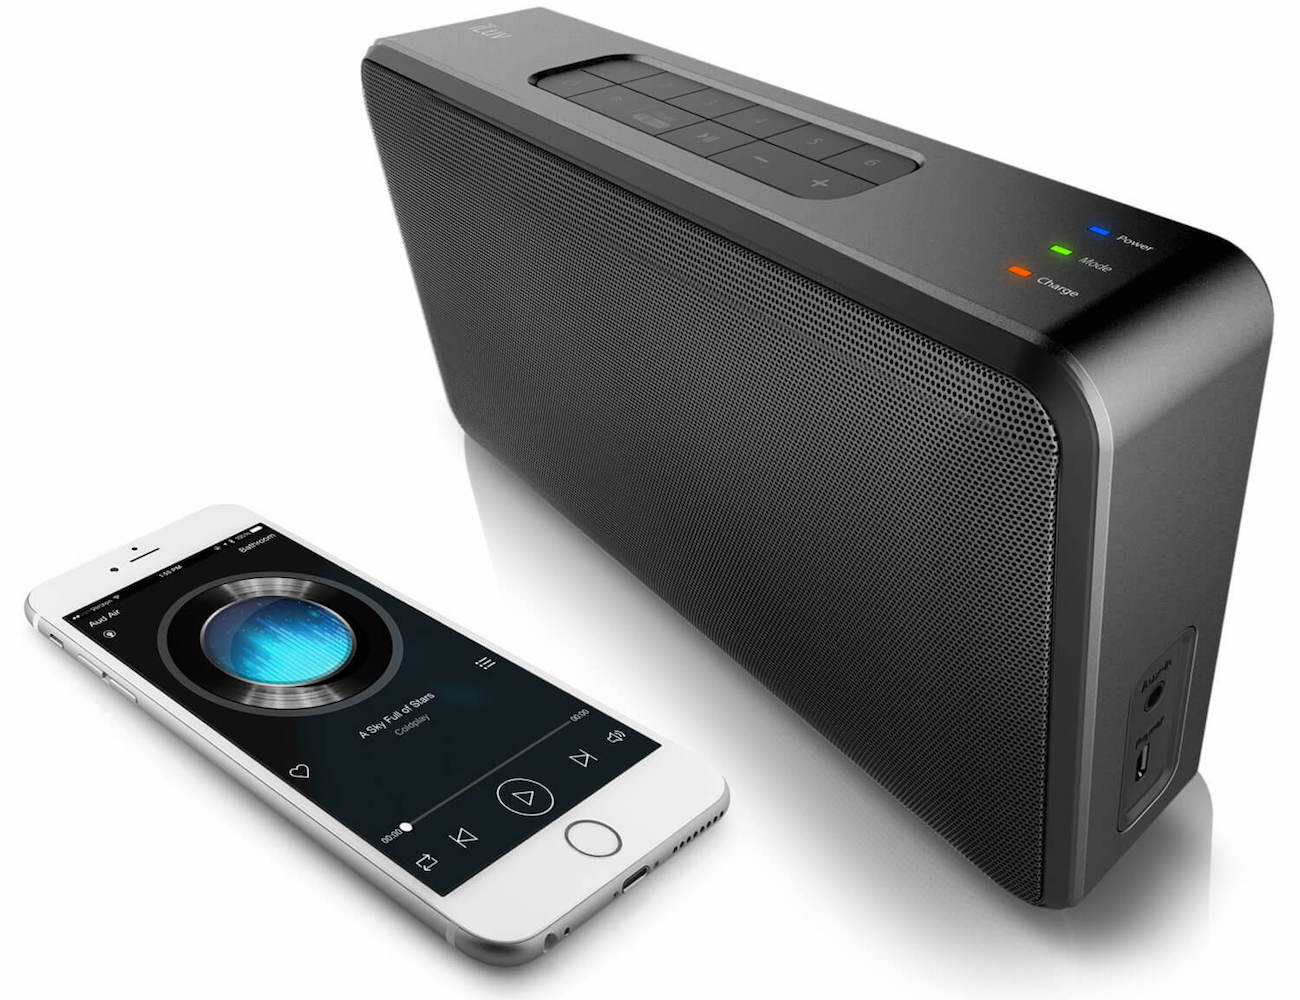 Aud Air Wireless Portable Stereo Speaker